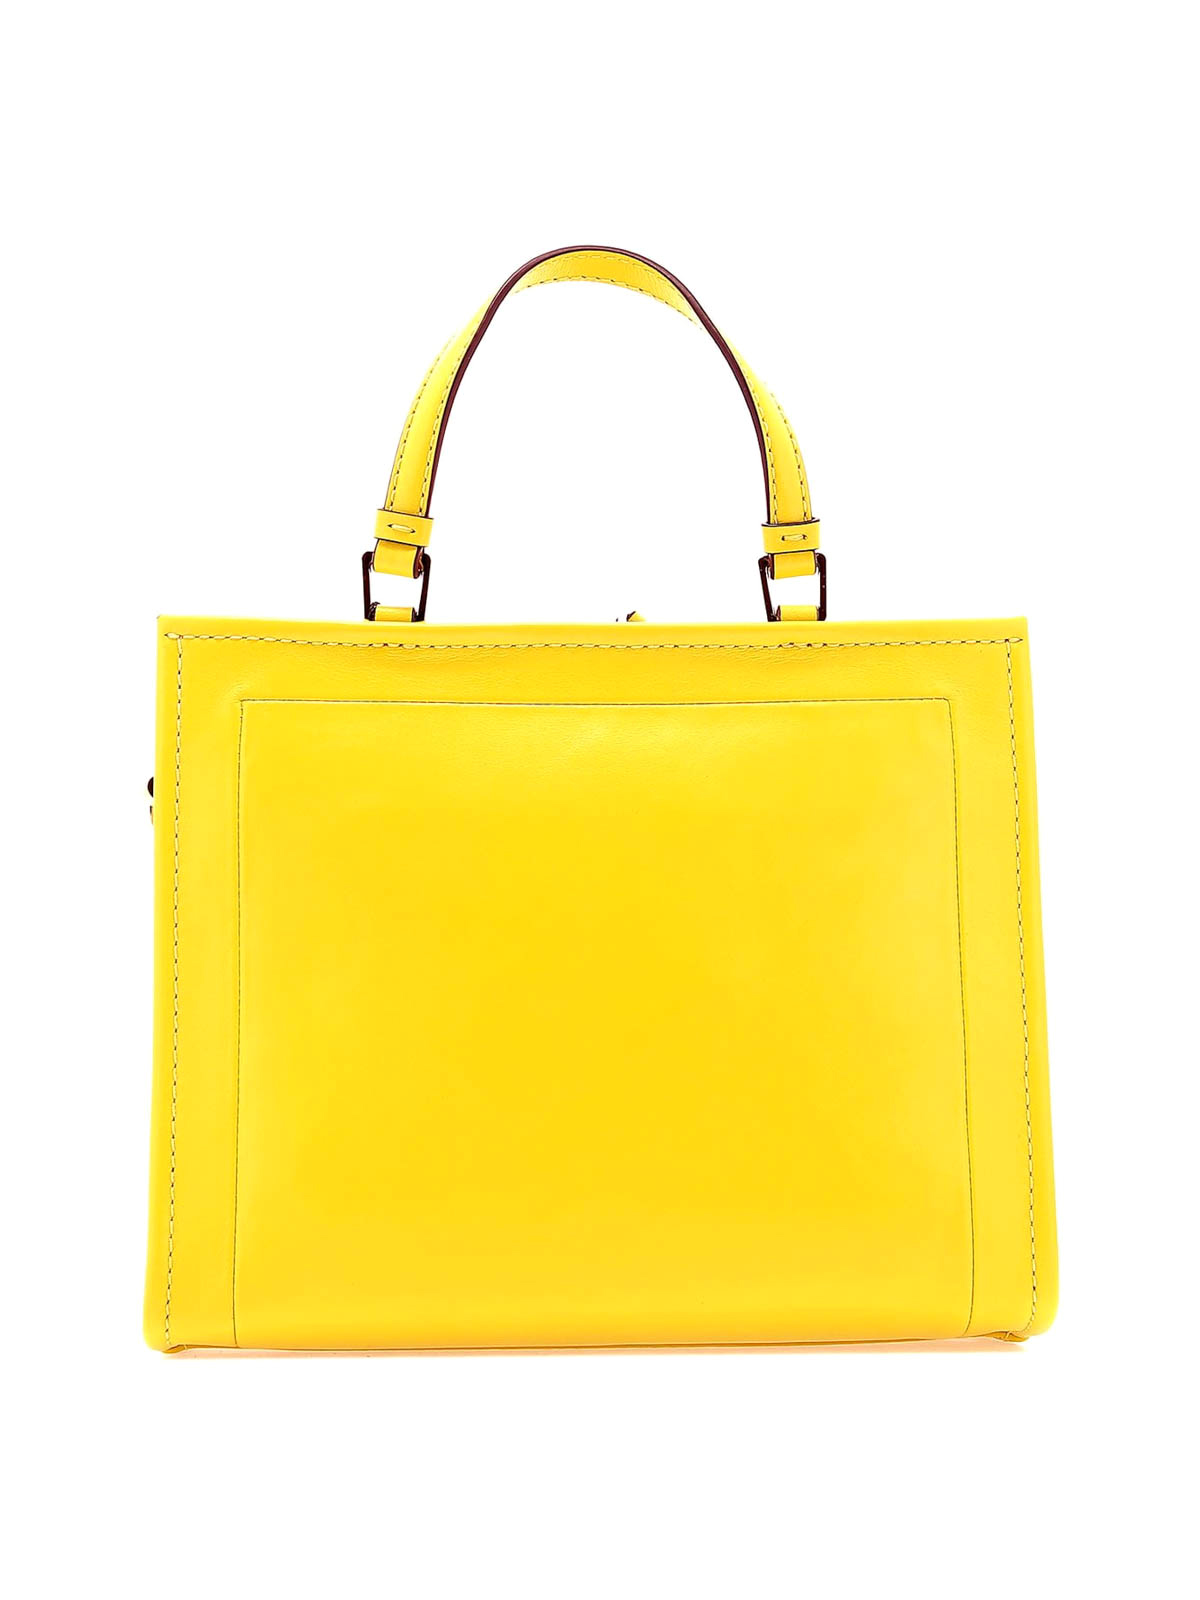 c12d58a06 Marc Jacobs - The Box 29 yellow leather tote - totes bags - M0014496757